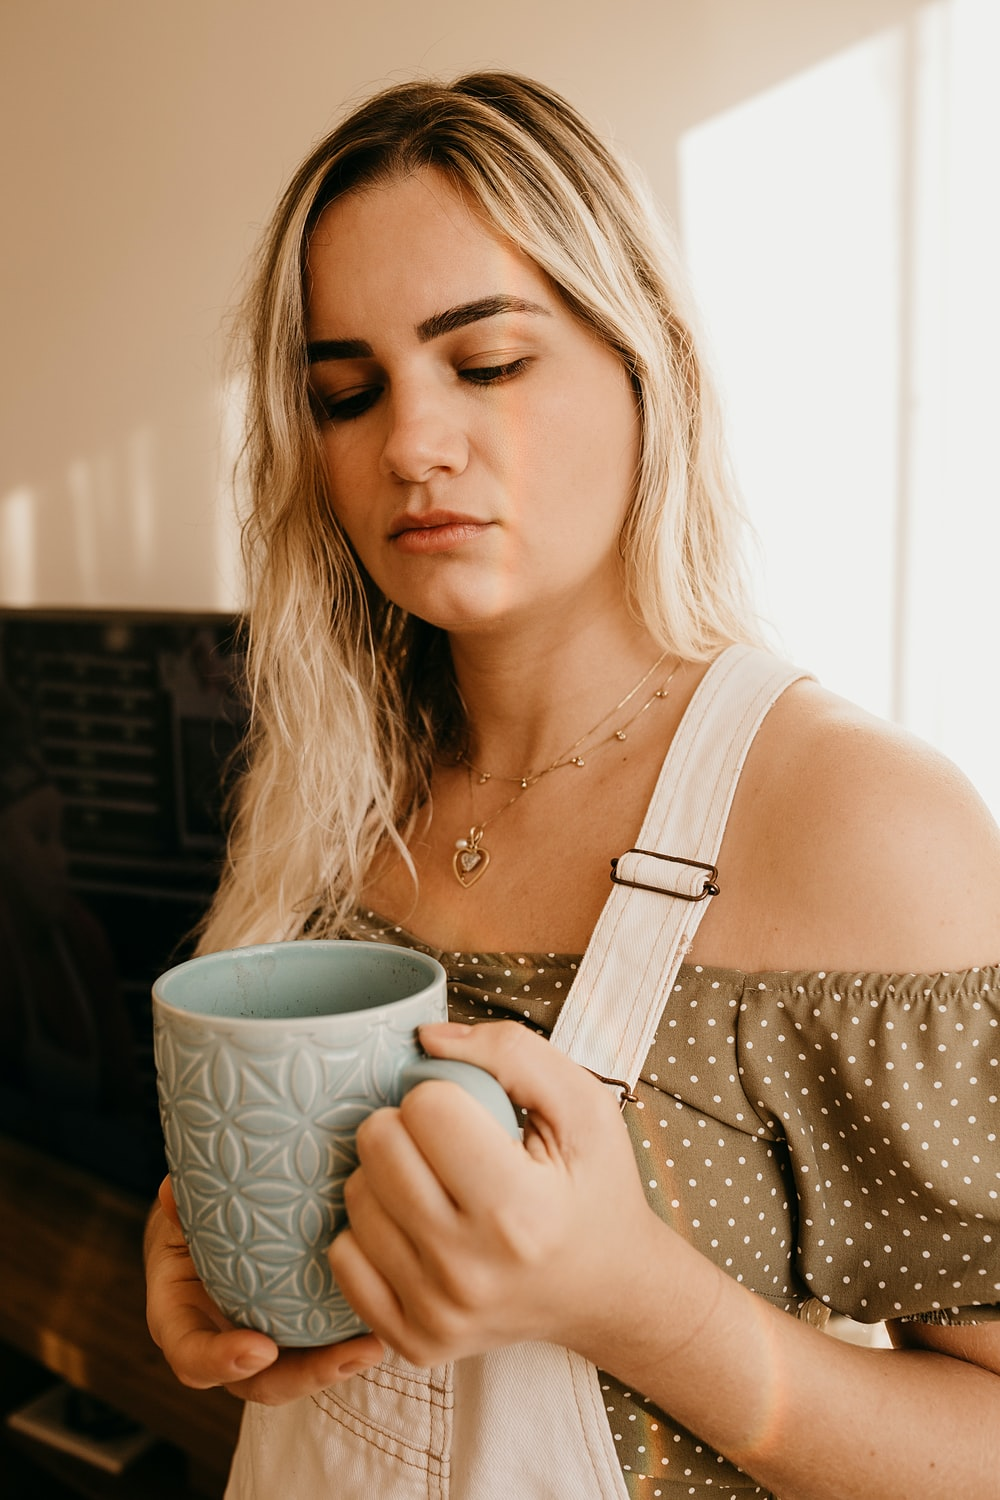 woman in white tank top holding white and green ceramic mug